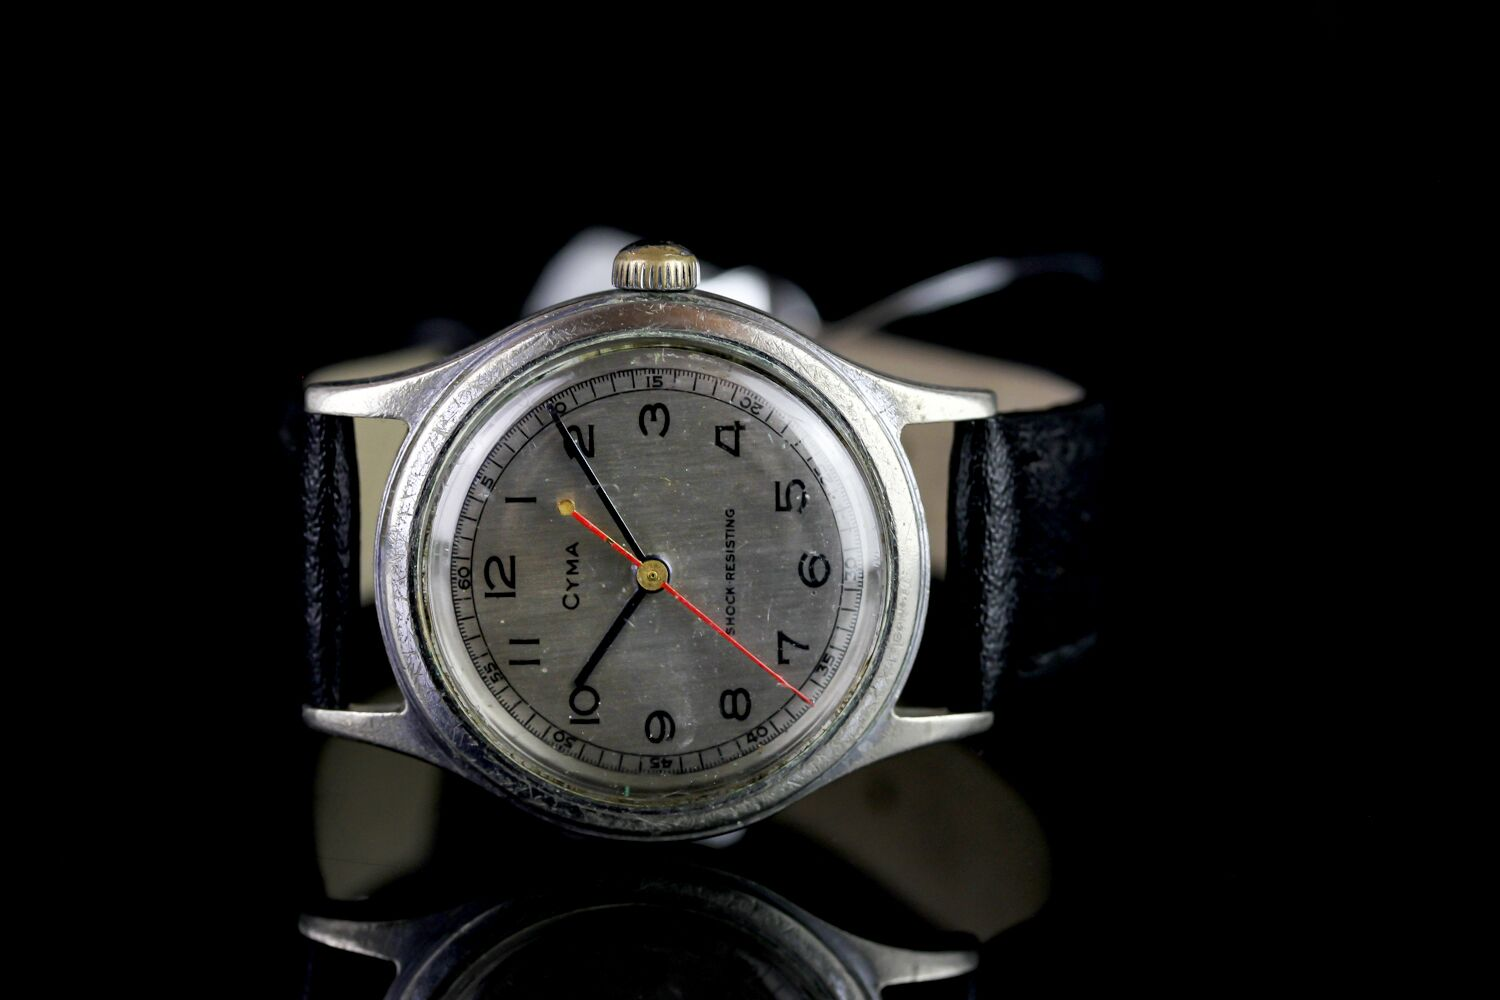 MID SIZE CYMA SHOCK RESISTING VINTAGE WRISTWATCH, circular brushed silver dial with black arabic